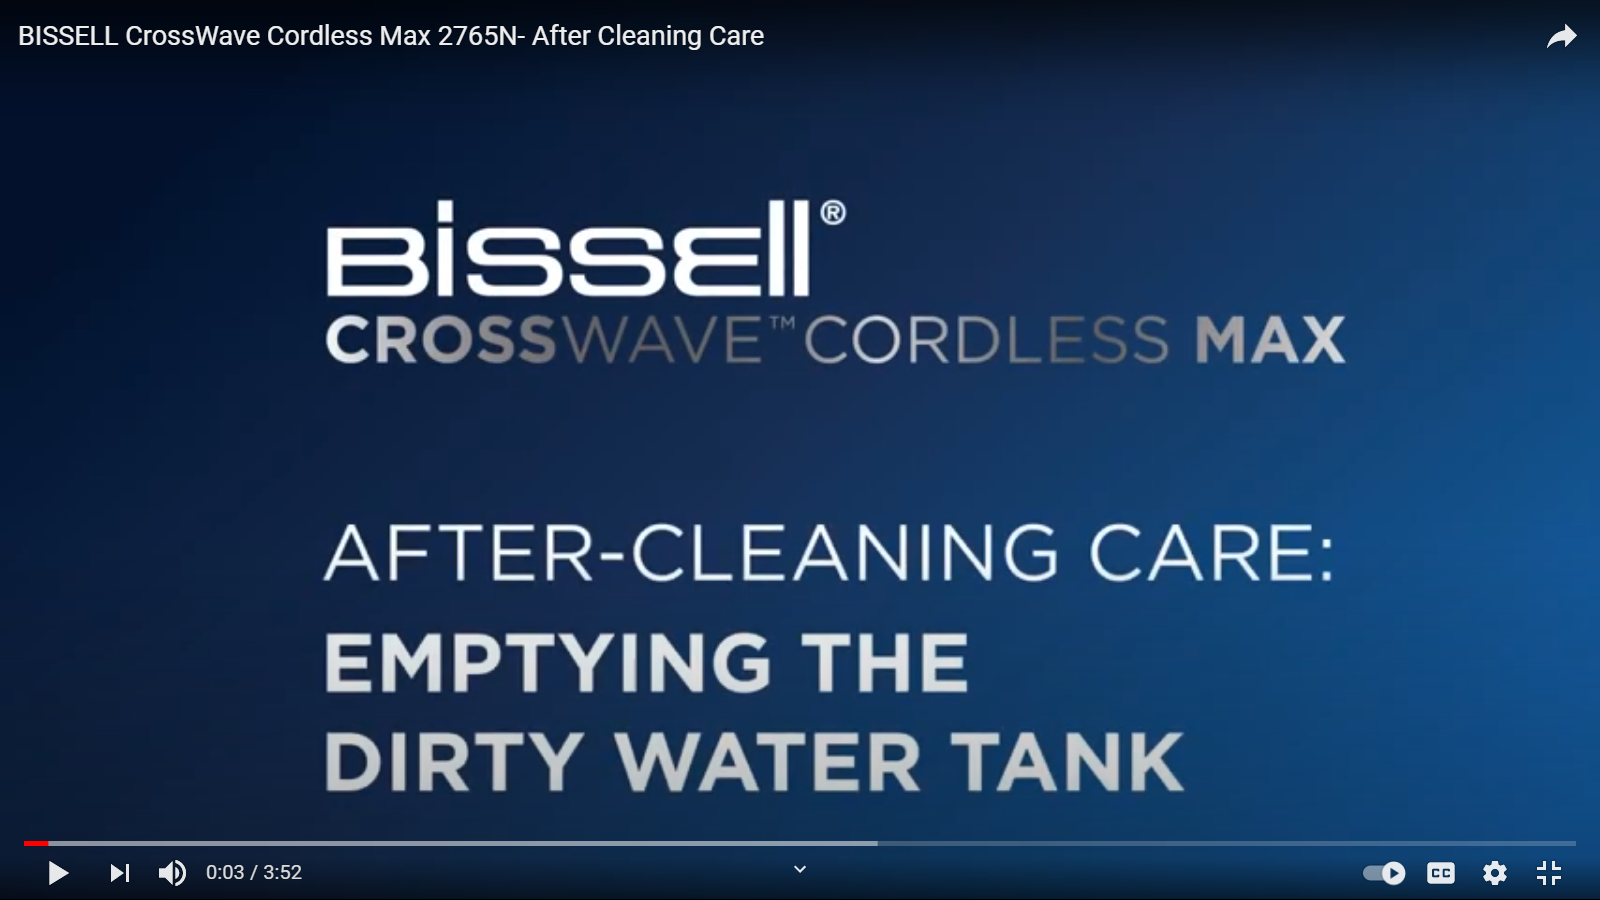 How to take care of your CrossWave Cordless Max after cleaning